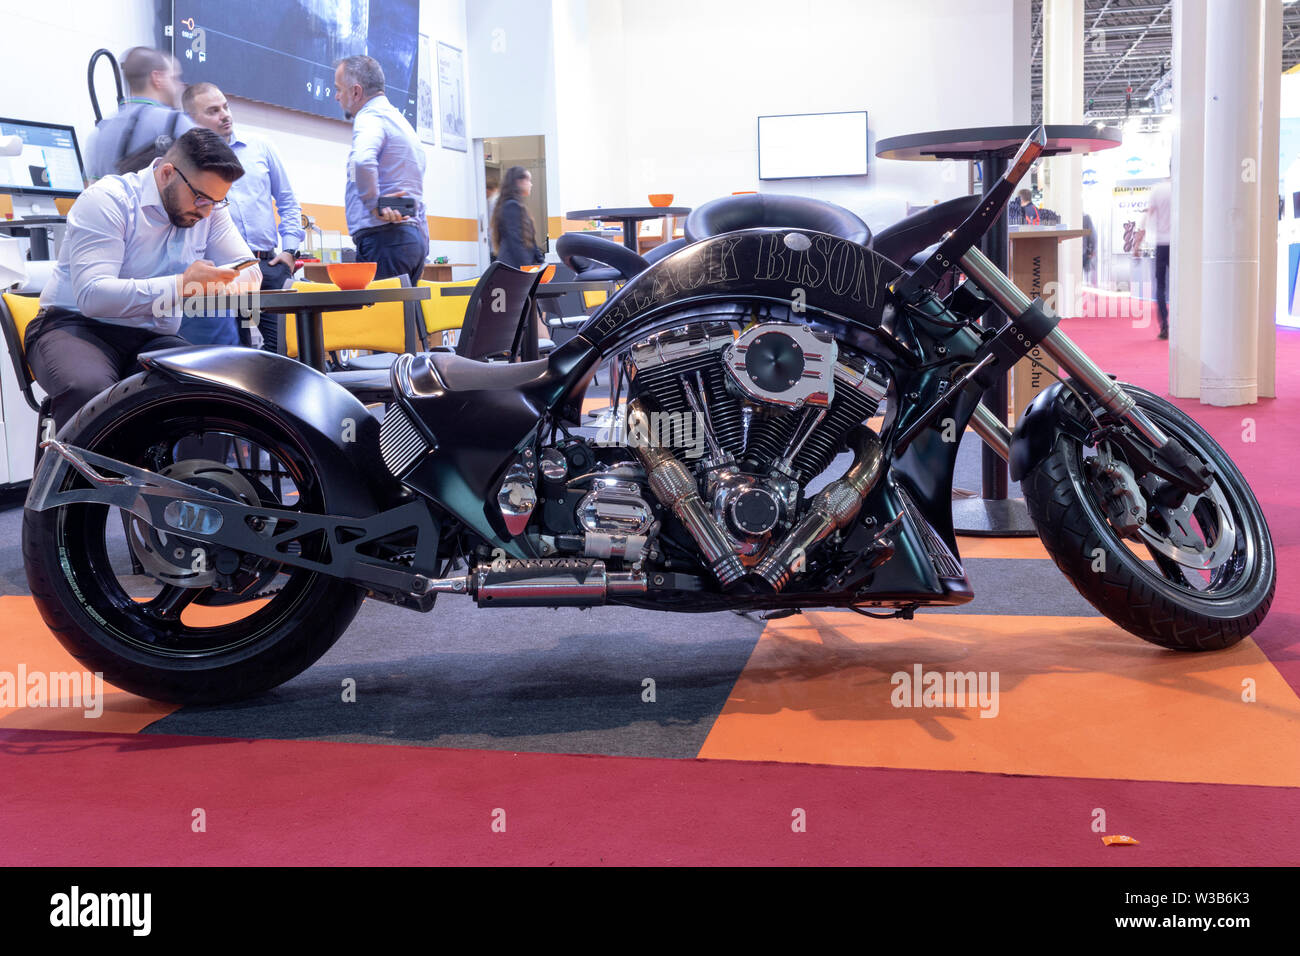 Custom Bike Show High Resolution Stock Photography and Images   Alamy